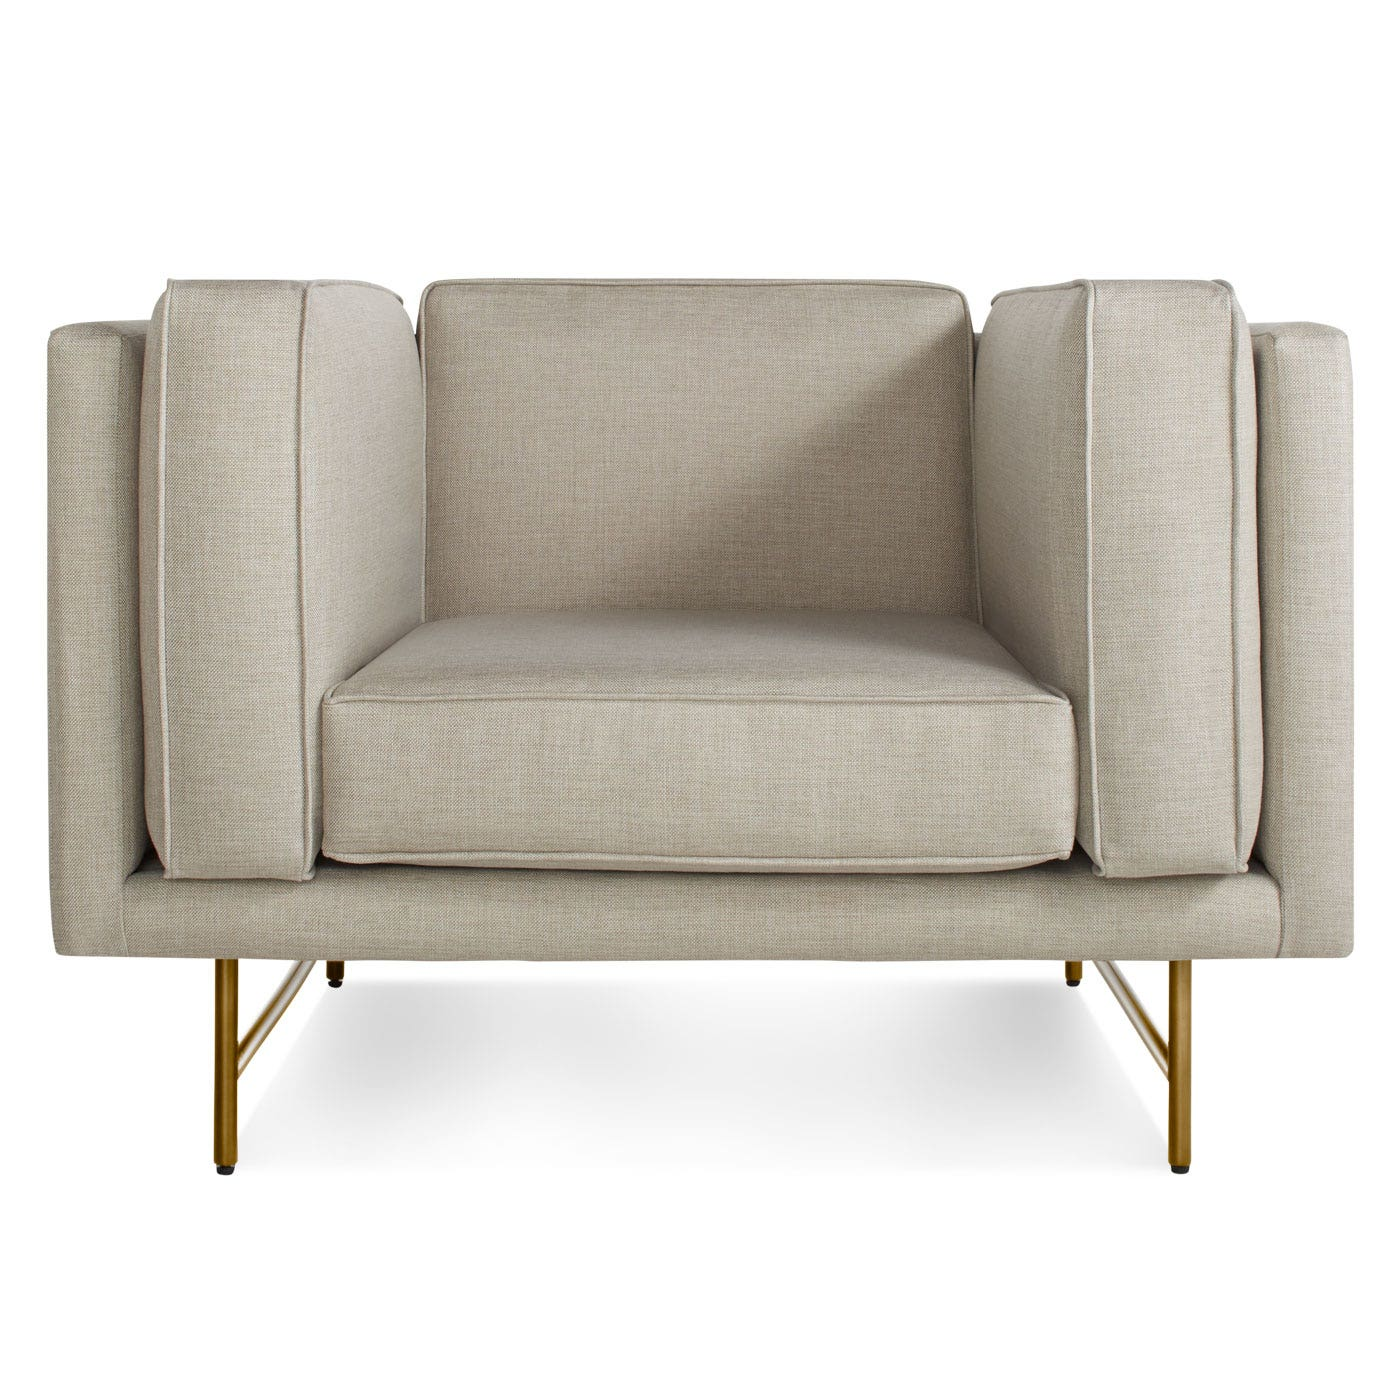 Bank Upholstered Club Chair Modern Club Chair